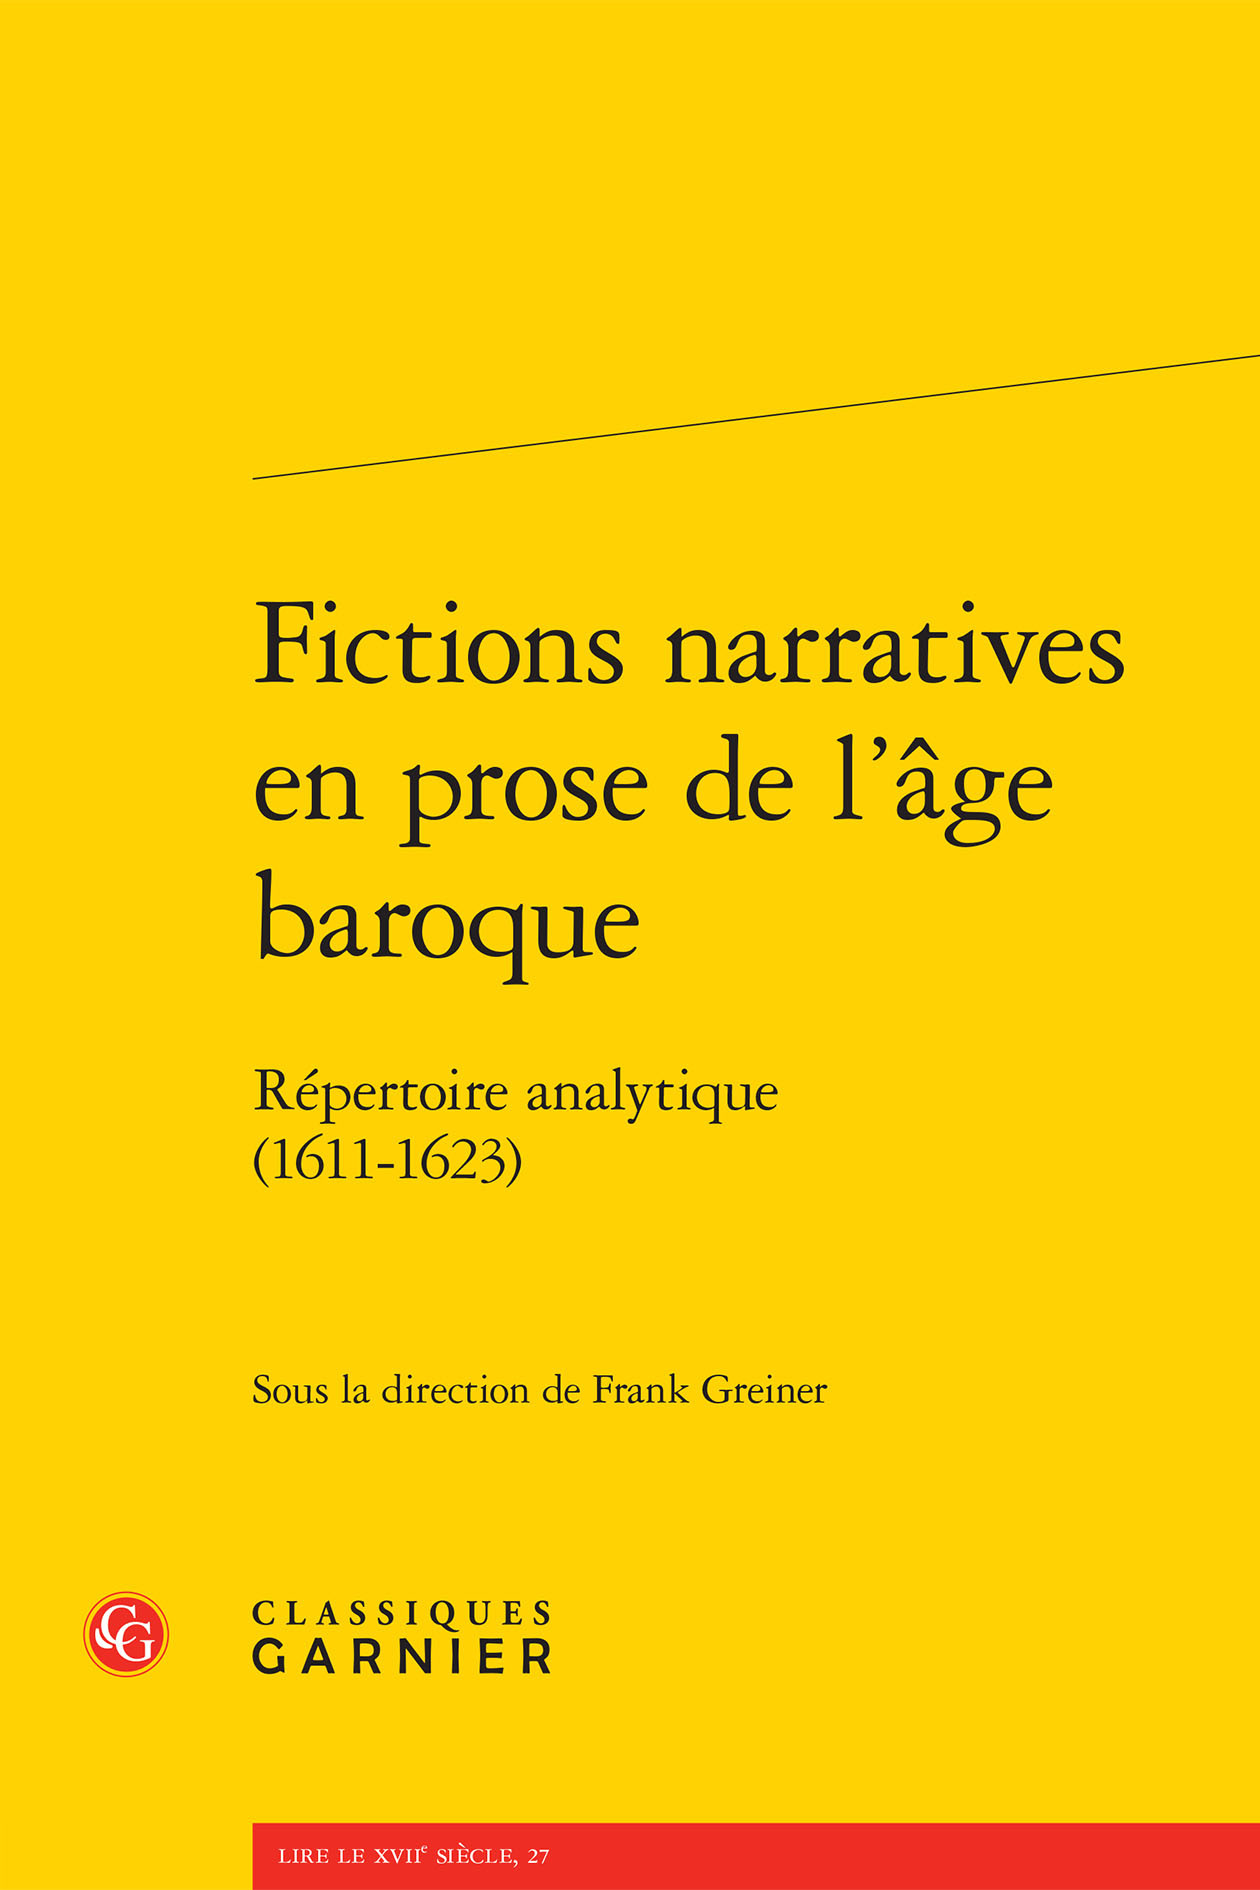 FICTIONS NARRATIVES EN PROSE DE L'AGE BAROQUE - REPERTOIRE ANALYTIQUE. DEUXIEME - REPERTOIRE ANALYTI